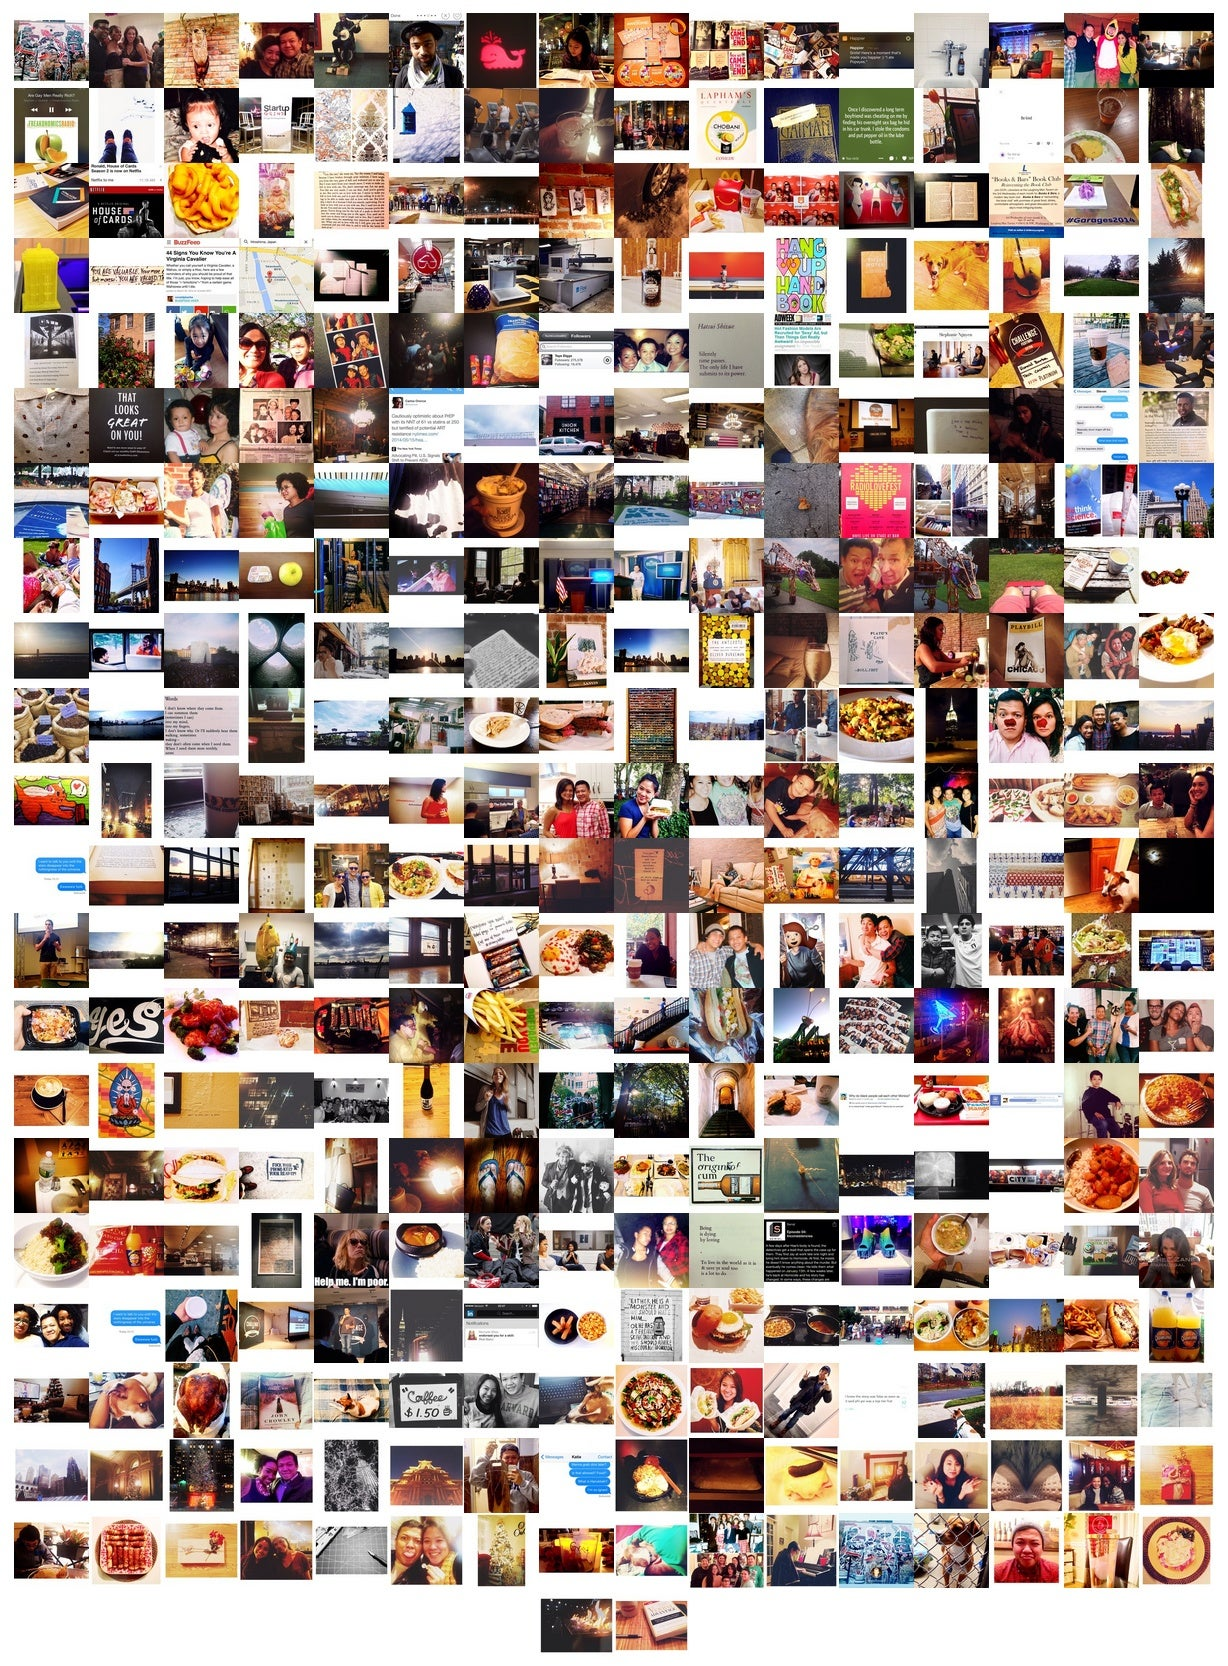 My Year Printed Instagram Poster 2014